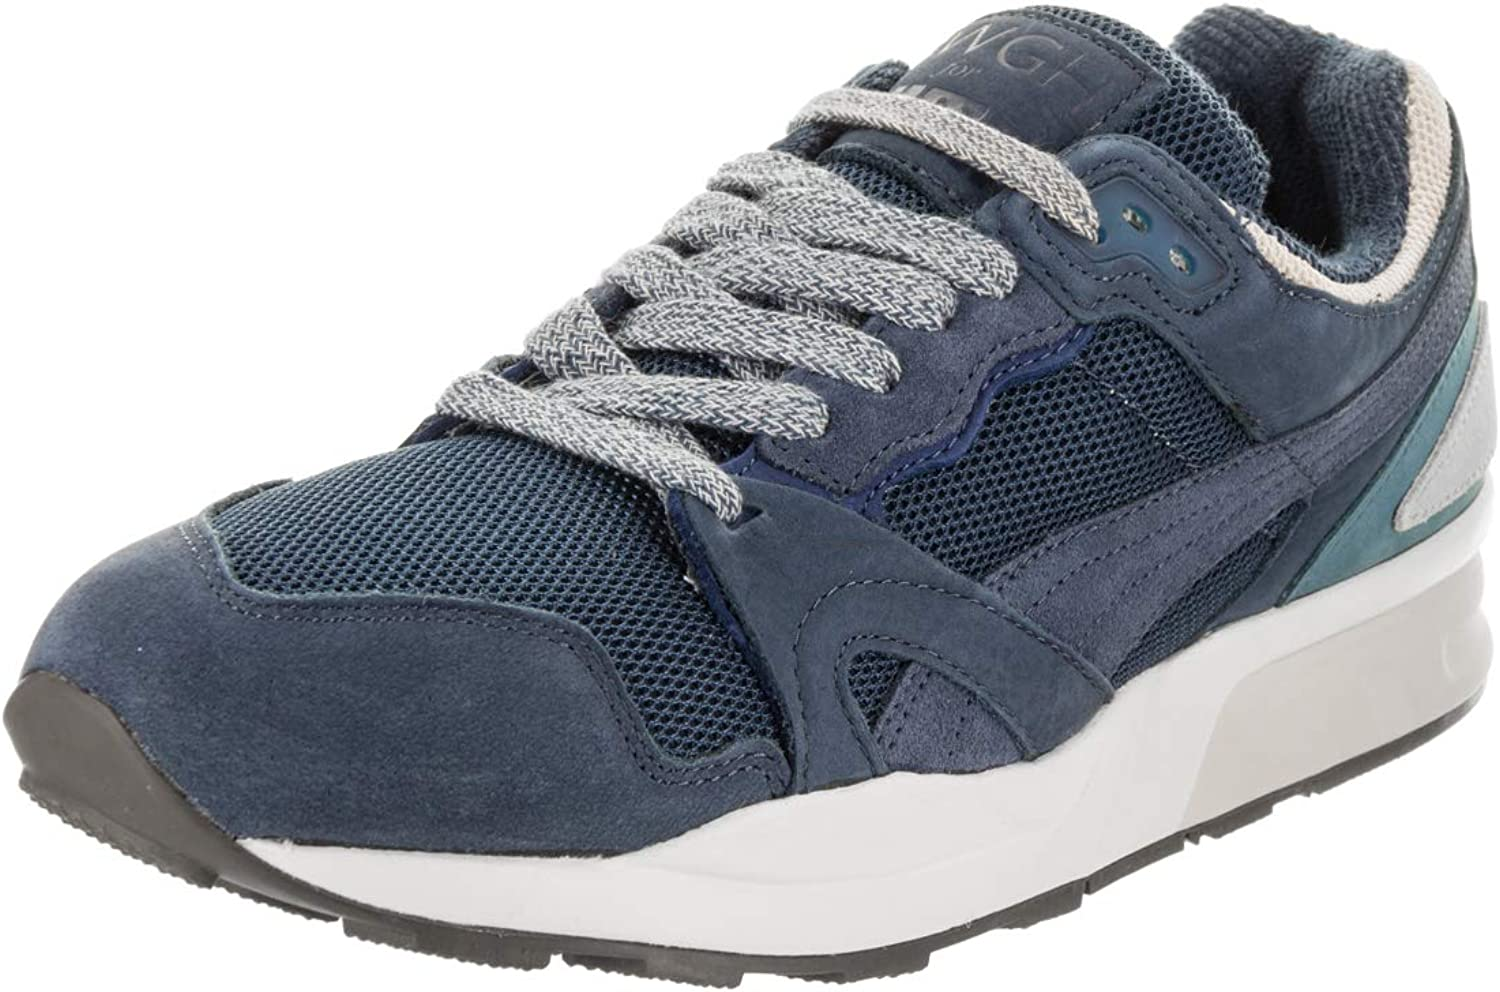 Puma Xt2 X Bwgh Synthetic Sneakers